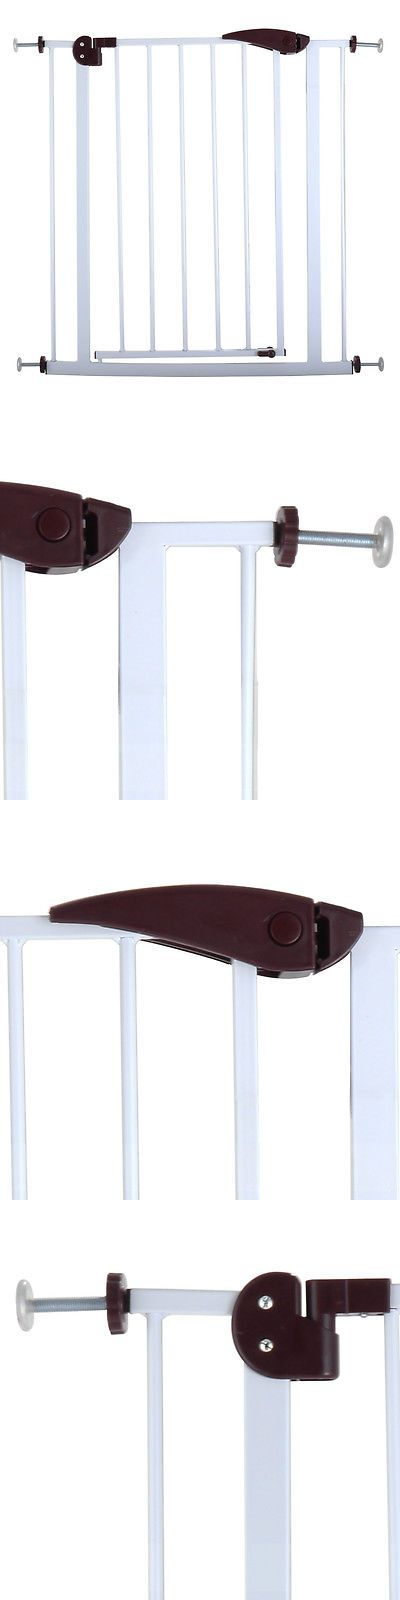 baby and kid stuff: Baby Safety Gate Door Walk Through Child Toddler Pet Metal Easy Locking System -> BUY IT NOW ONLY: $32.99 on eBay!